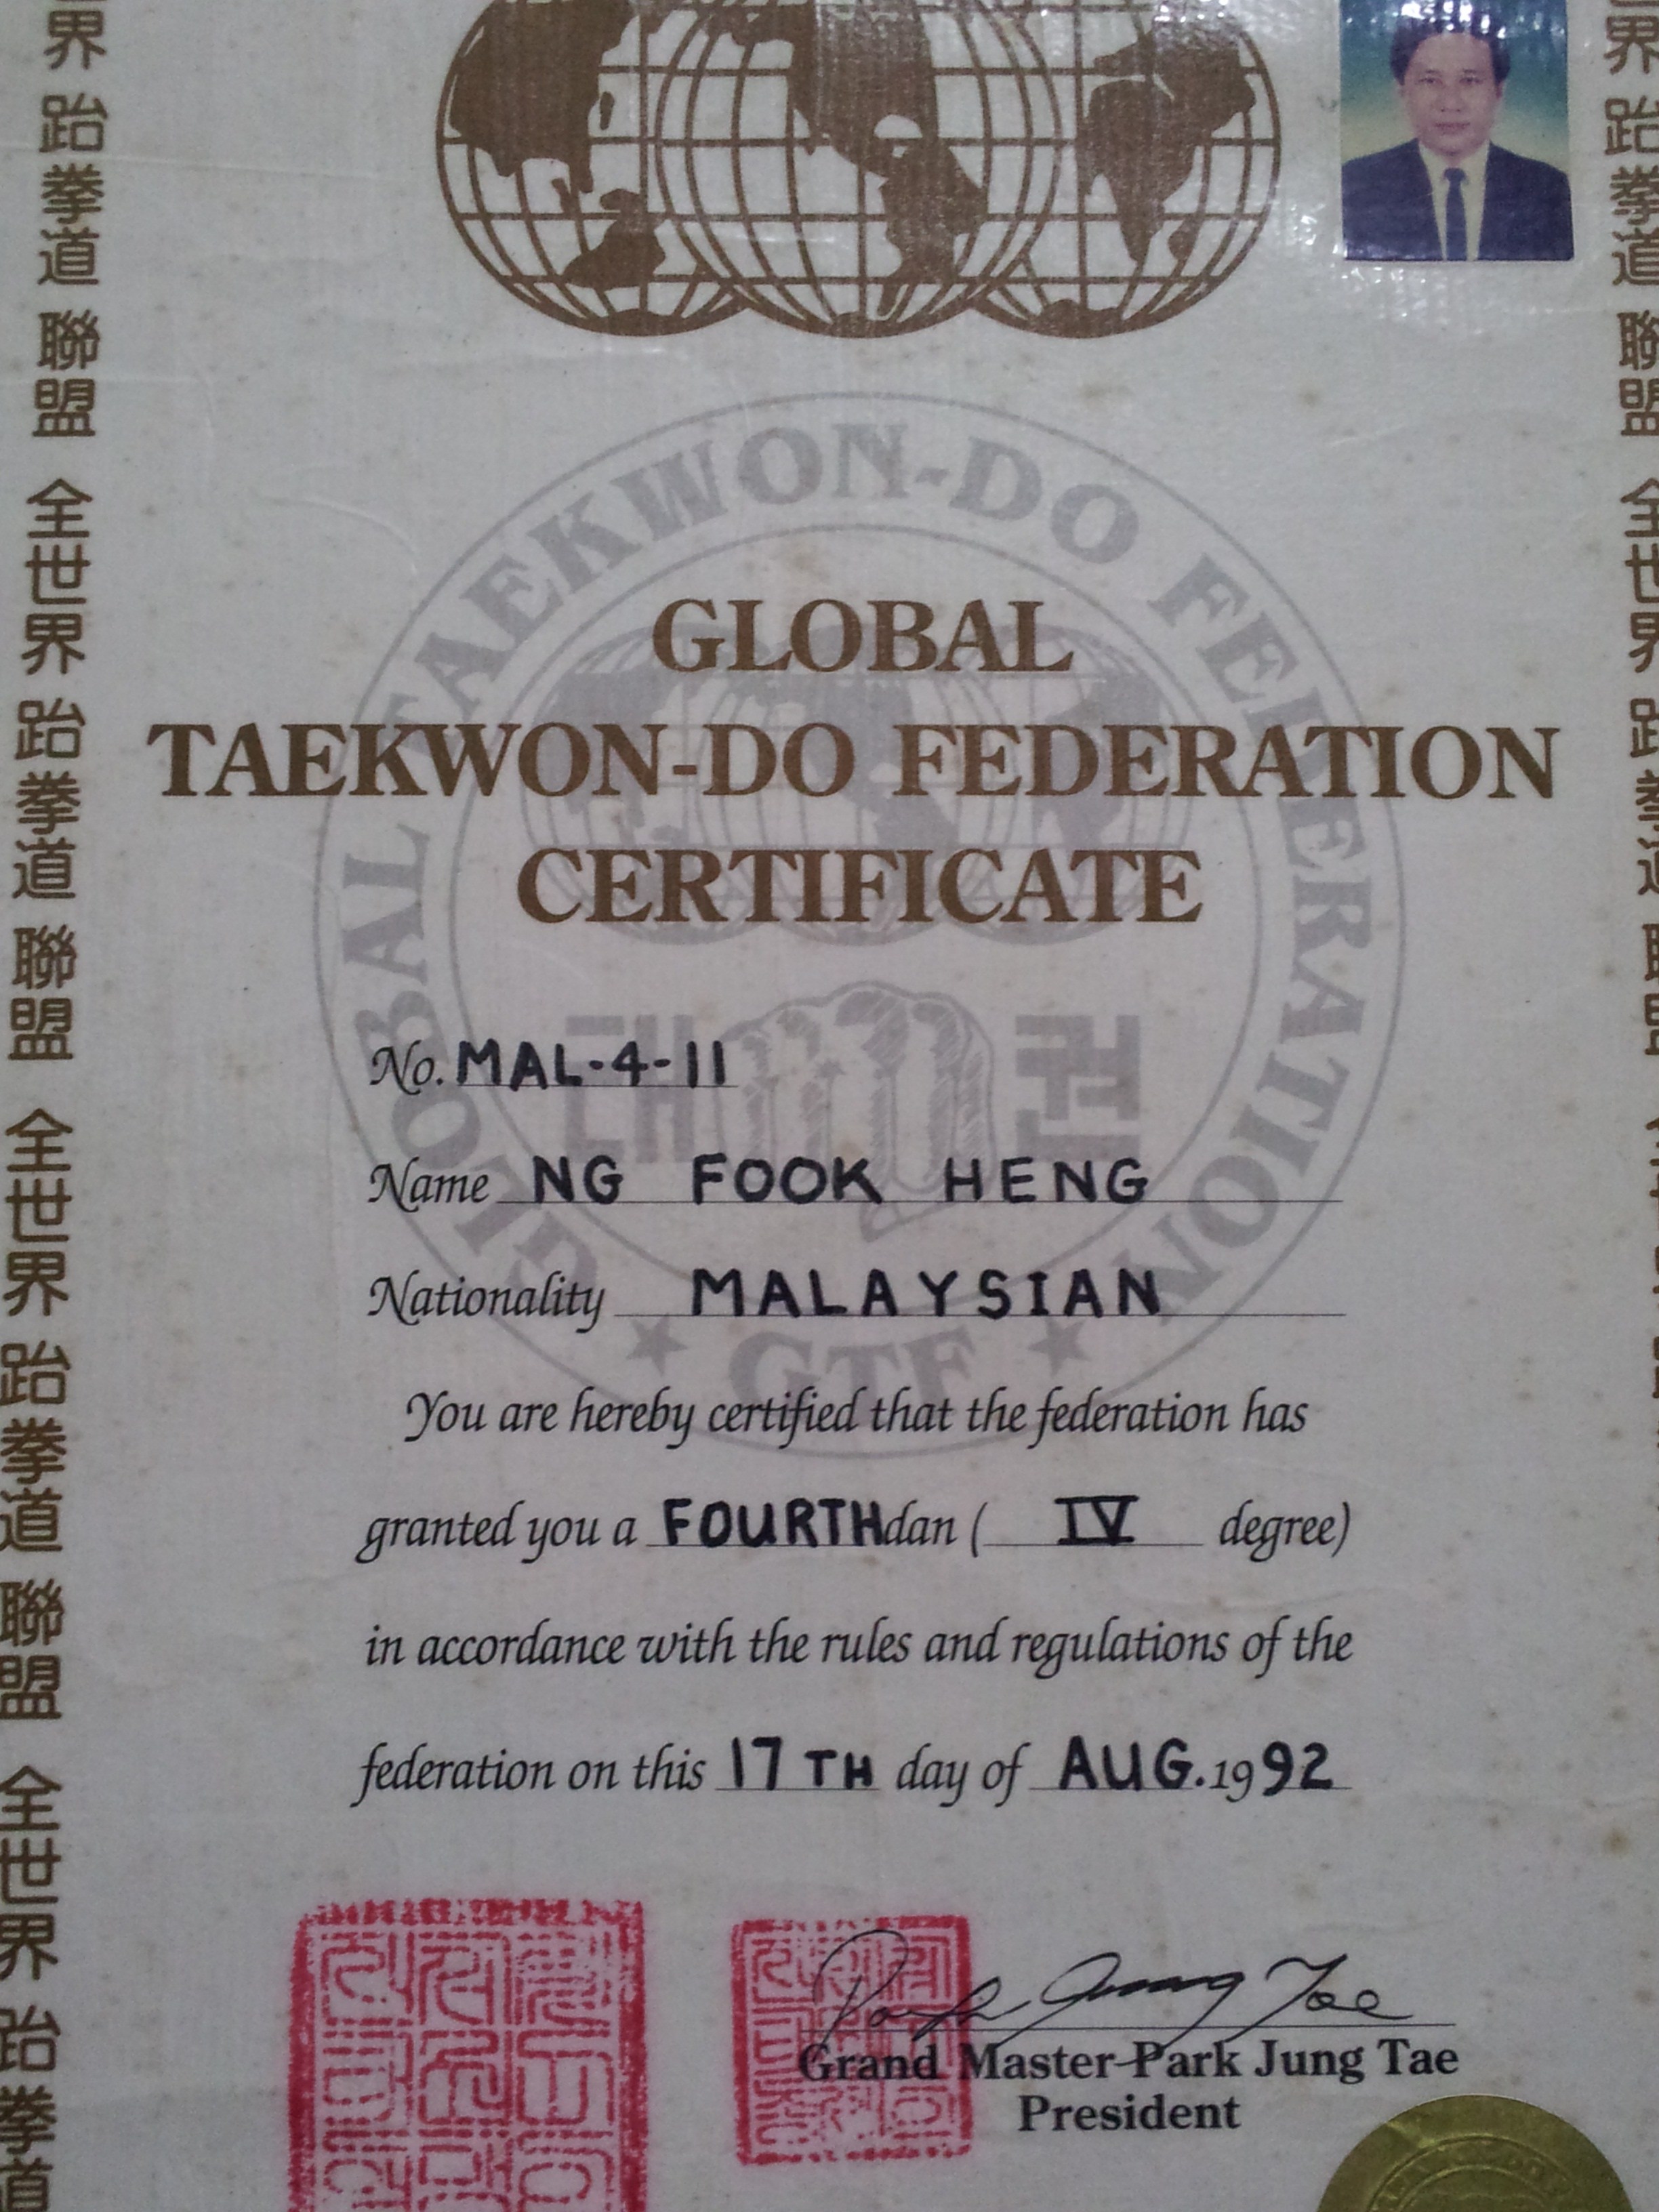 What questions will I get on my written exam to gain my Taekwondo yellow tag?